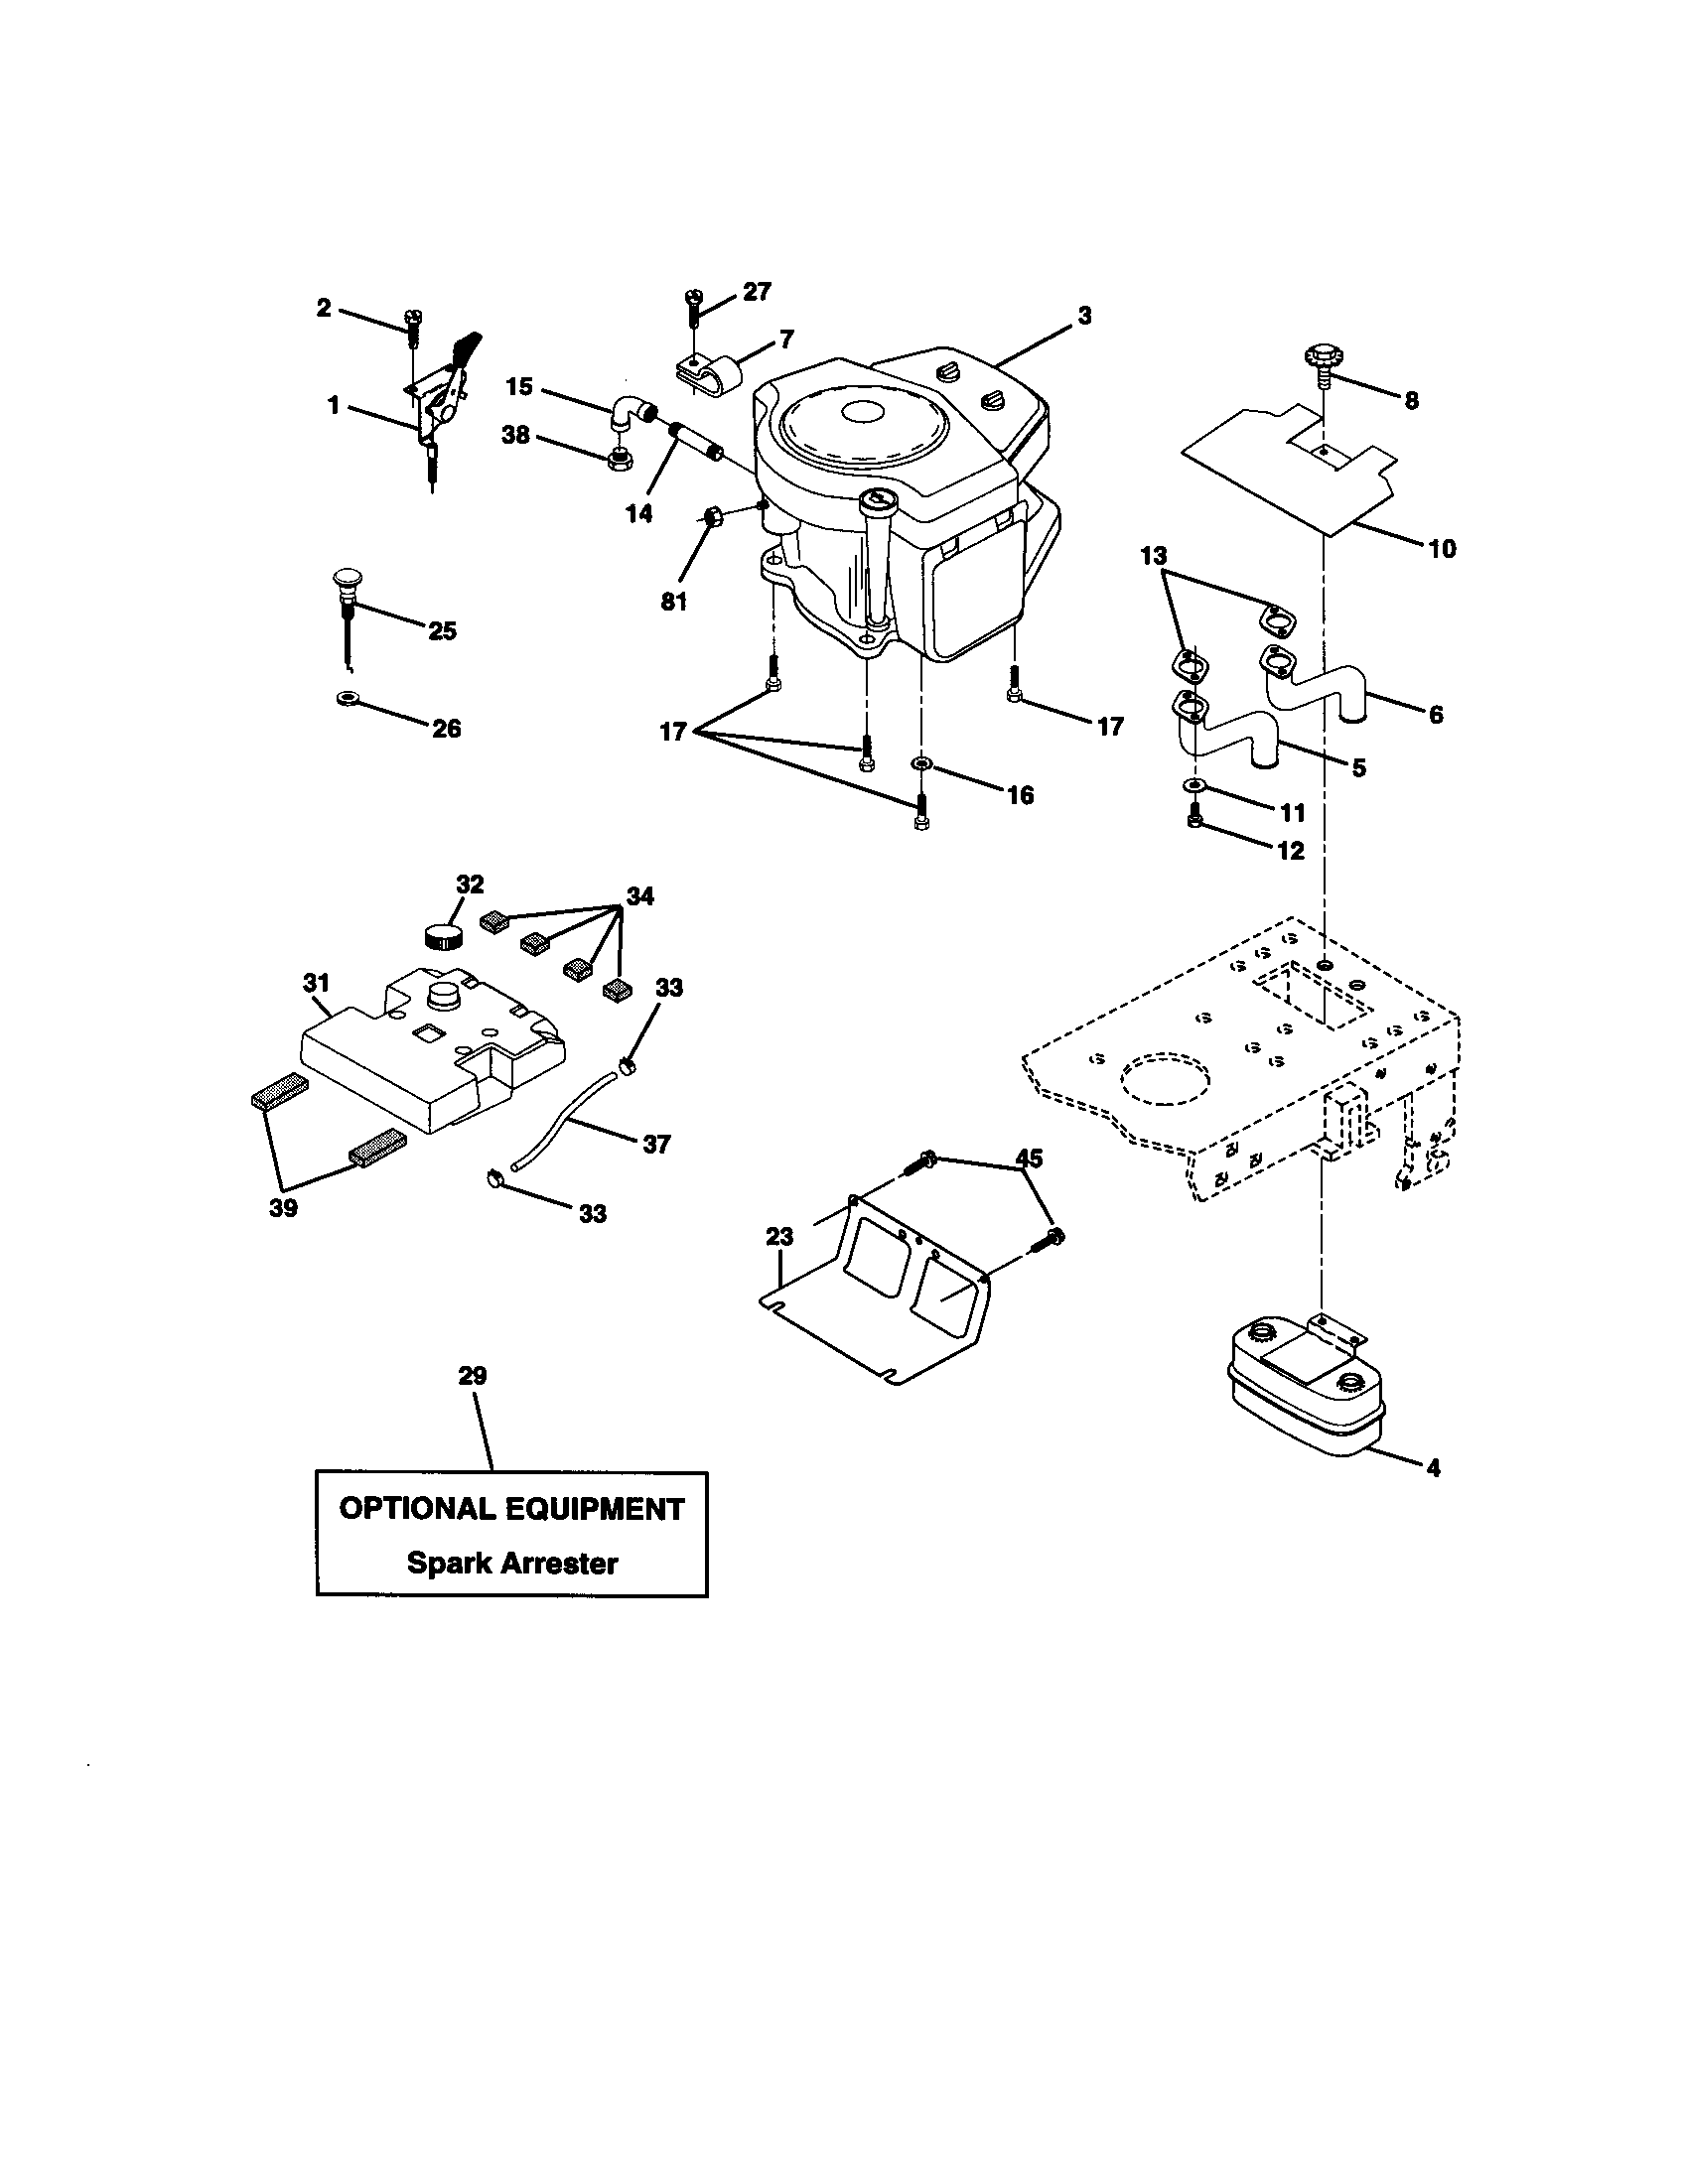 Scag Mower Wiring Diagram Scag Mower Specifications Wiring